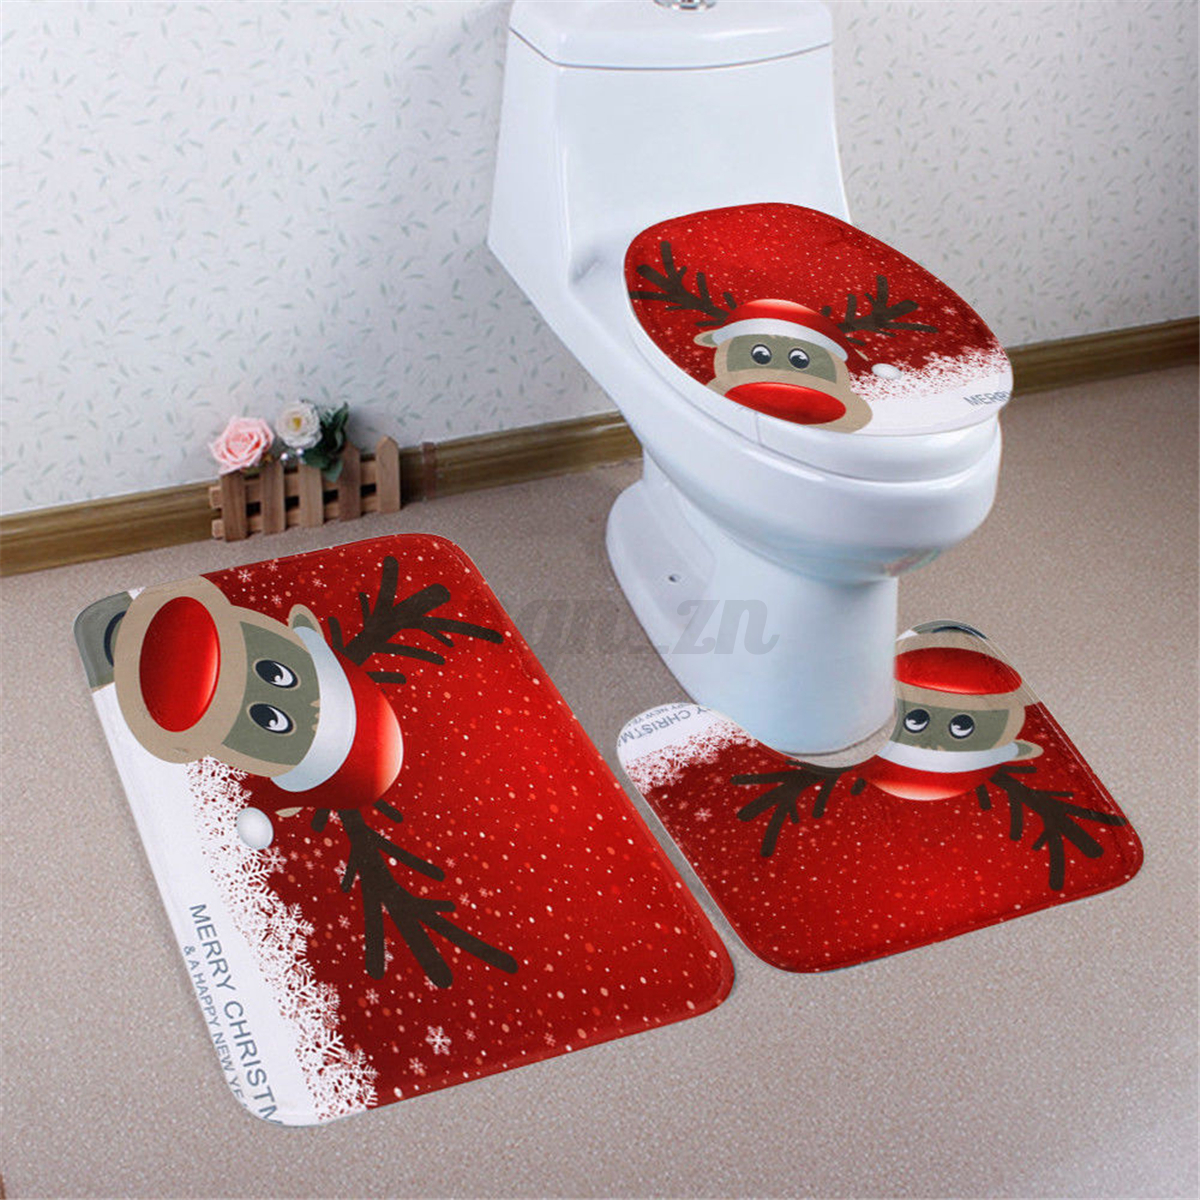 Christmas decorations 3pcs snowman toilet seat covers xmas for B m xmas decorations